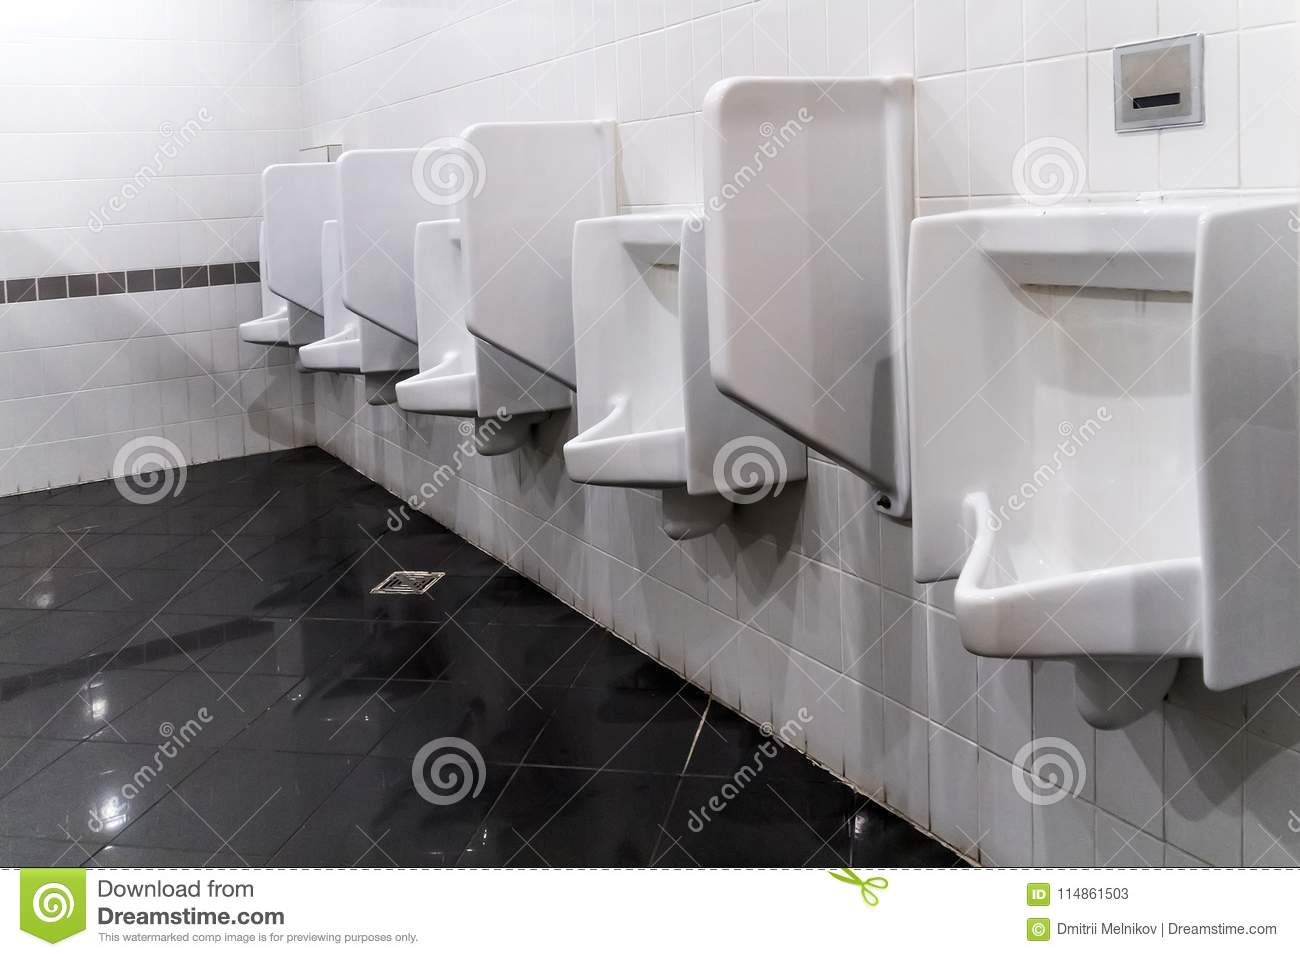 Download Closeup Of Three White Urinals In Menu0027s Bathroom, Design Of White  Ceramic Urinals Stock